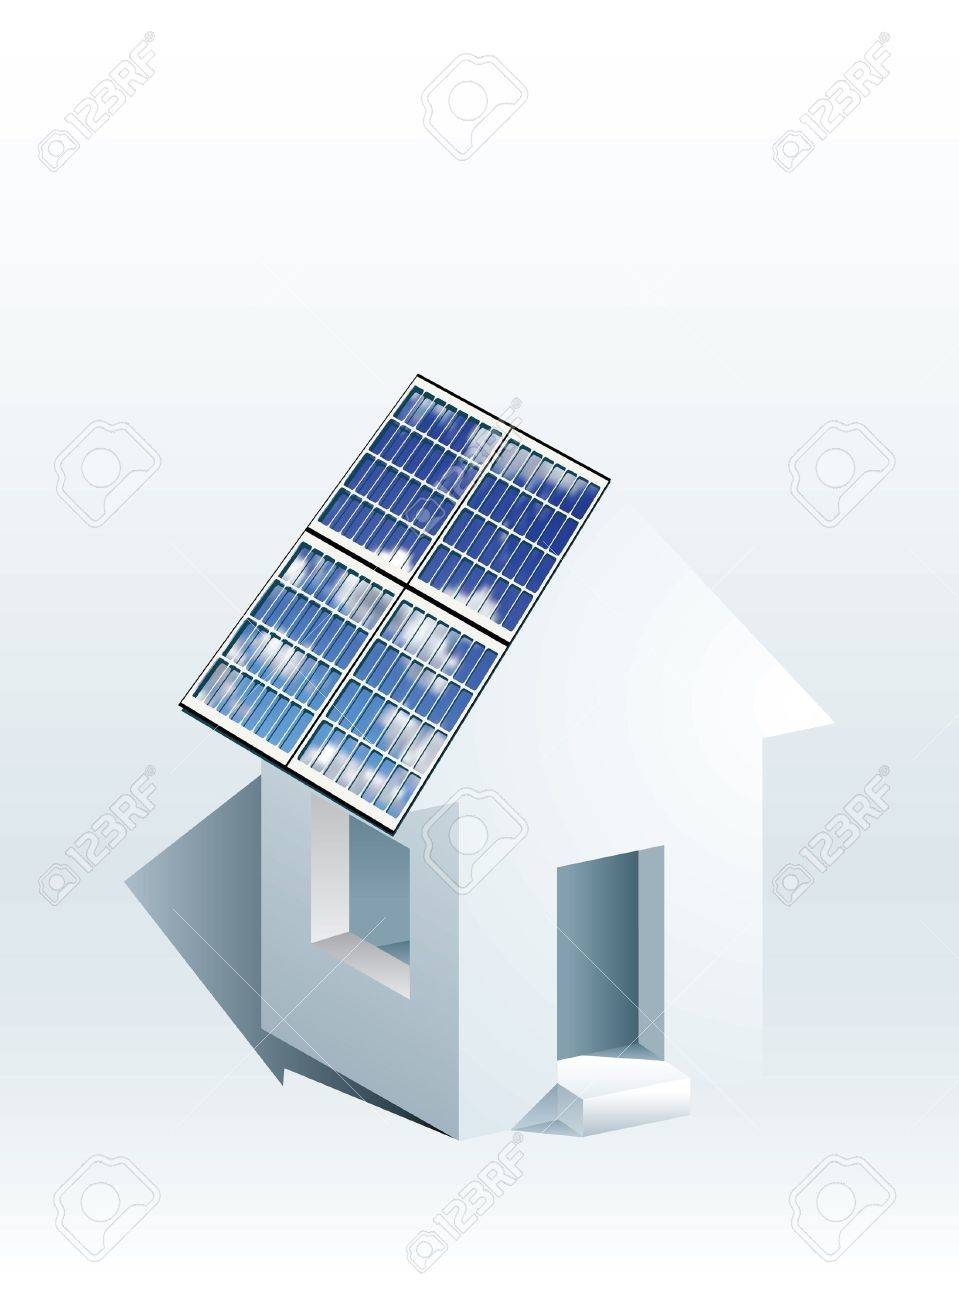 vector icon of house with solar panels Stock Vector - 12077090